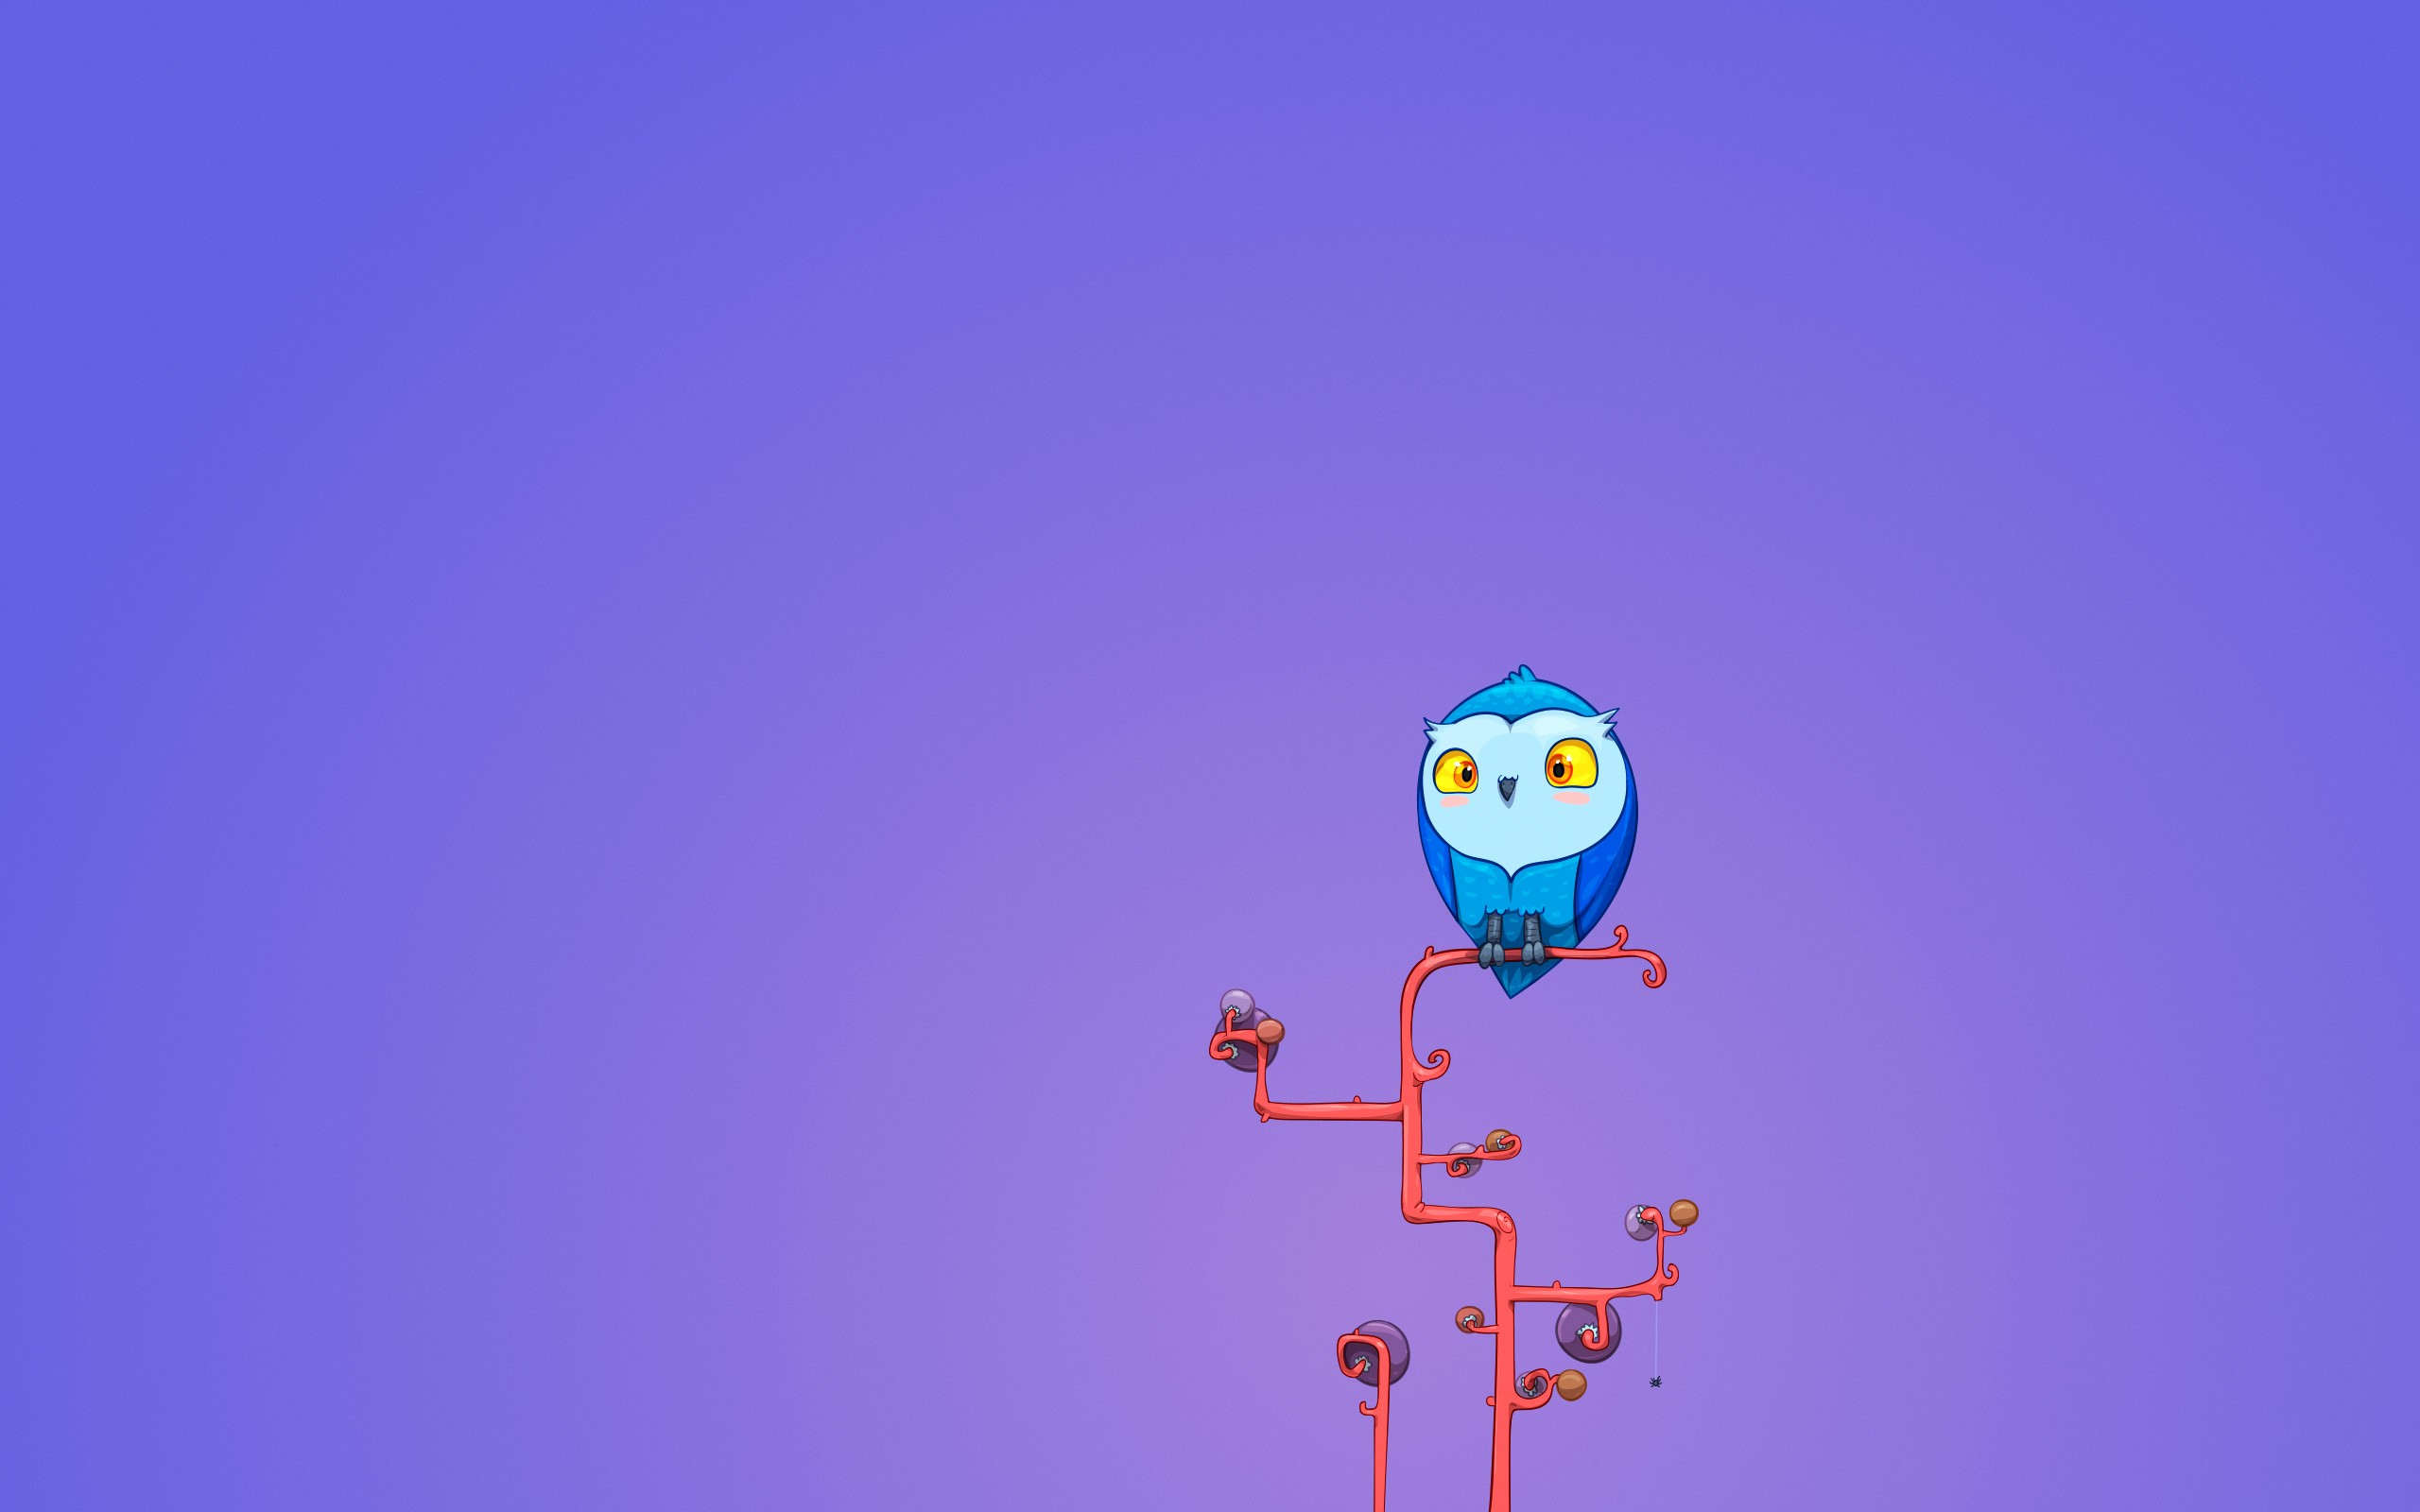 cute owls wallpaper